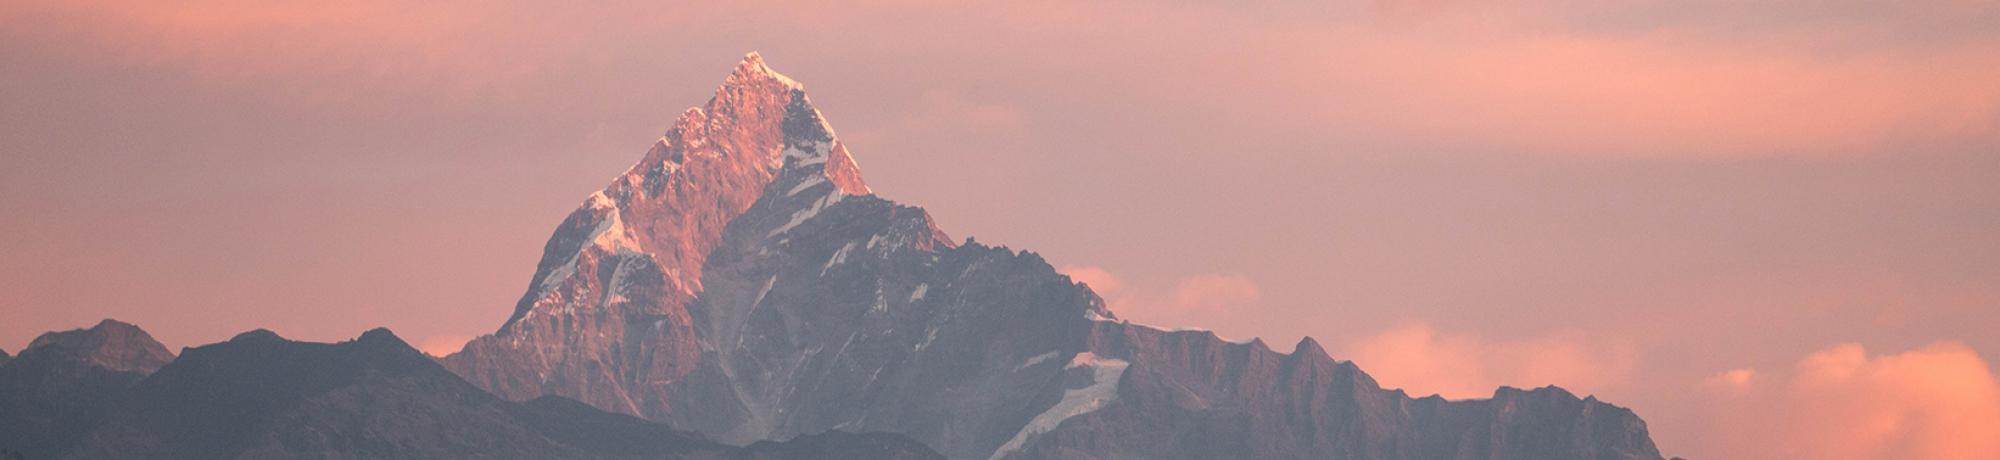 UC Davis Study Abroad, Seminars Abroad Nepal, Community, Technology, and Sustainability Program, Header Image, Courses Page